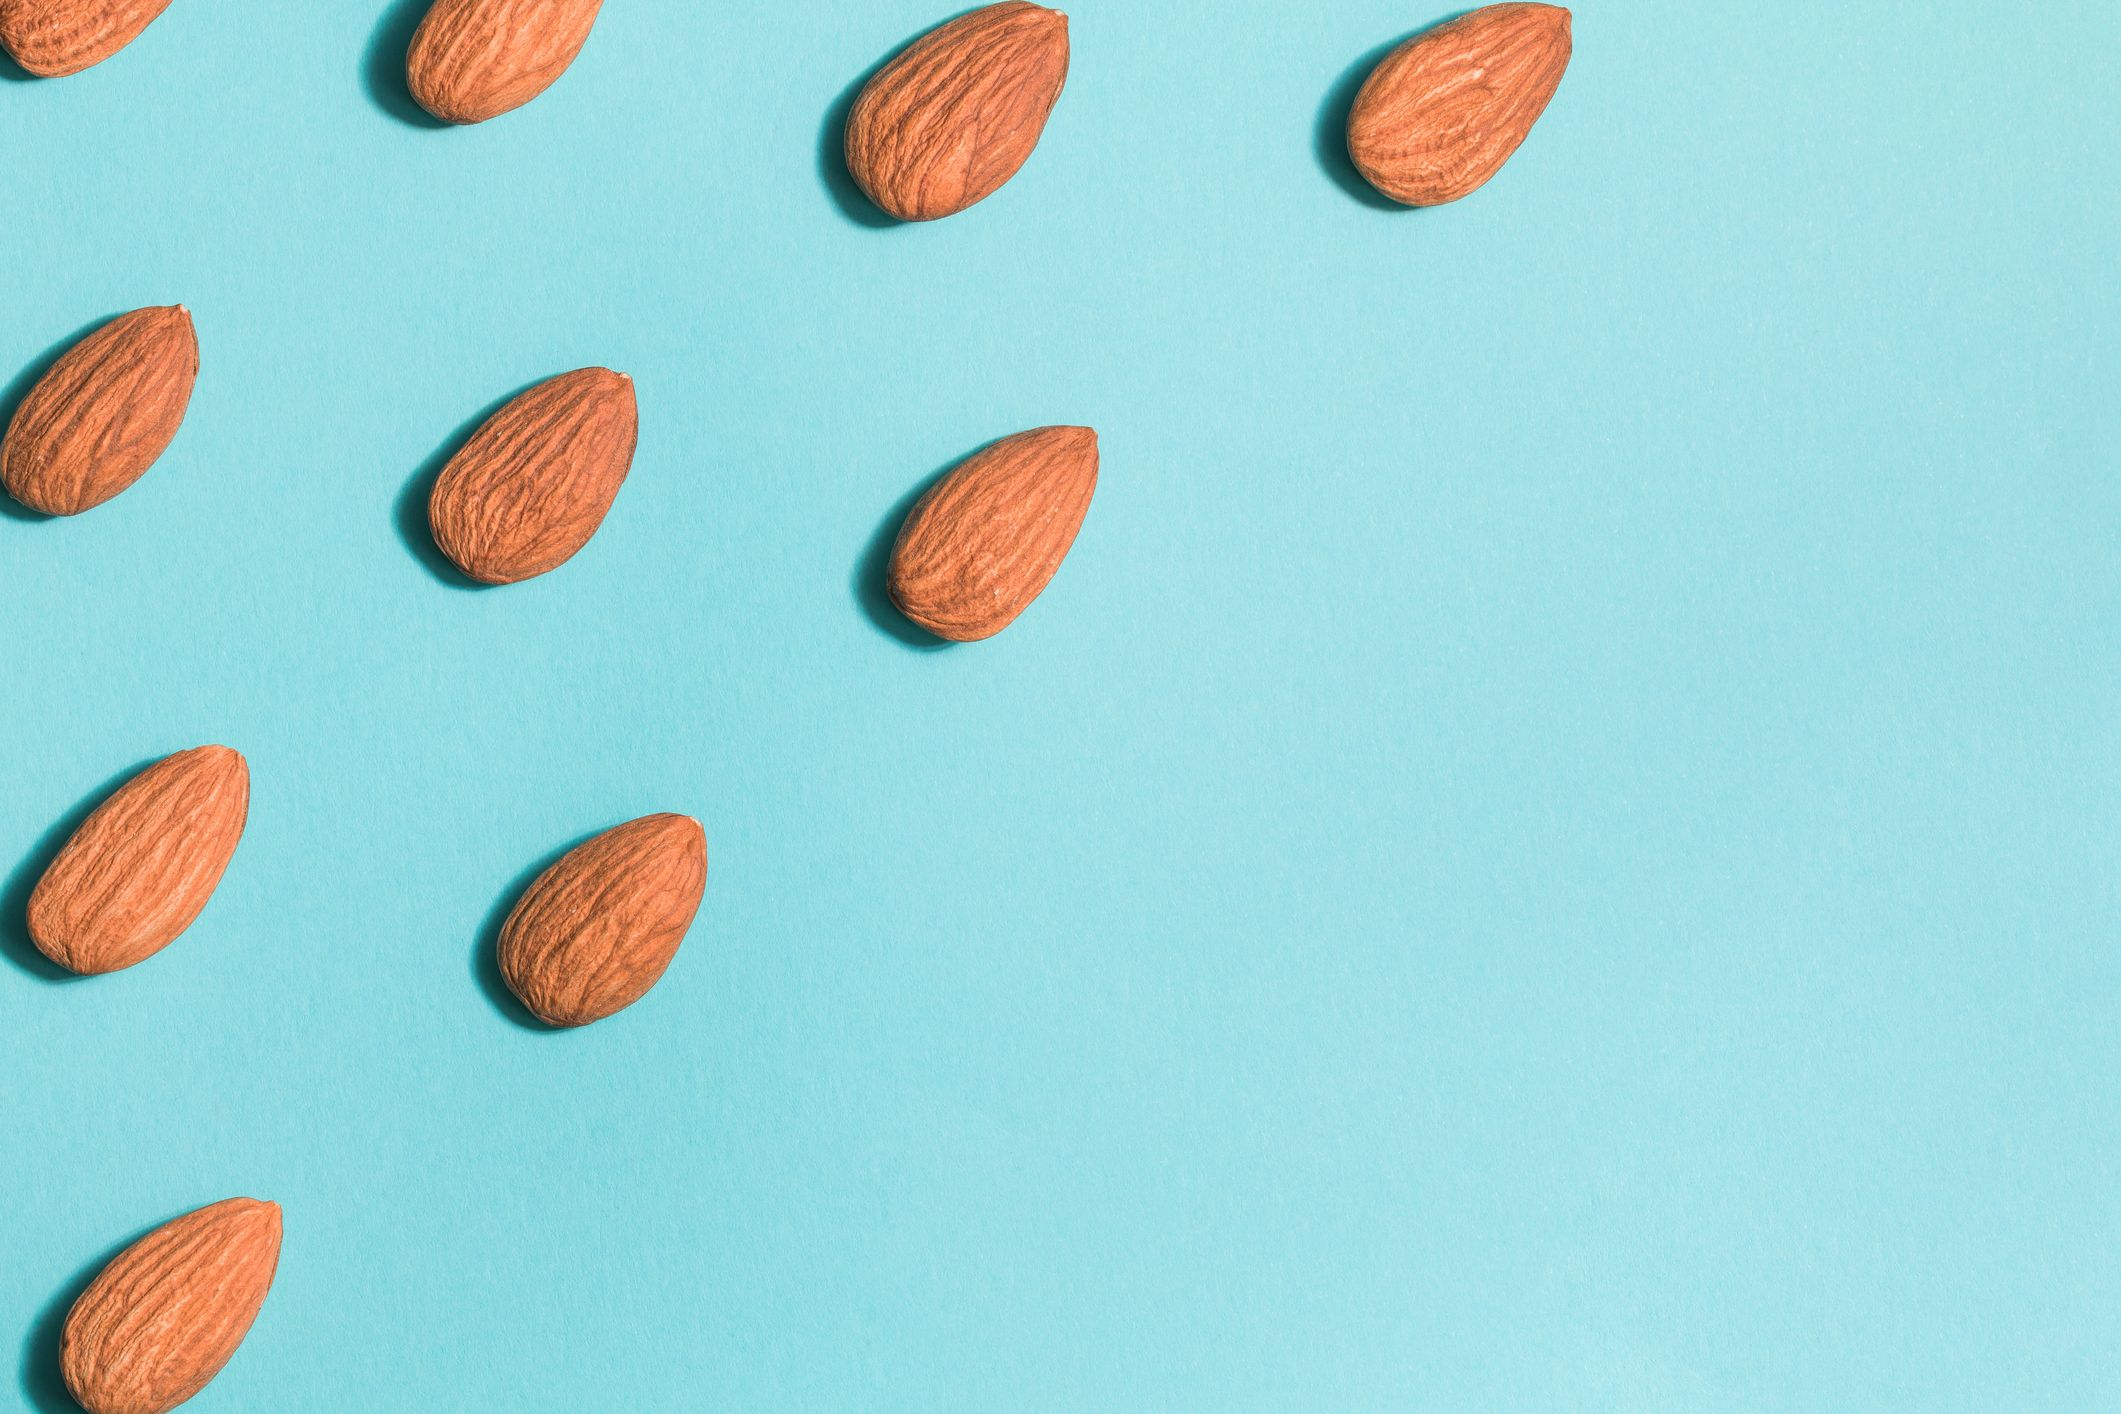 Almonds Have 20 Percent Fewer Calories Than Previously Thought